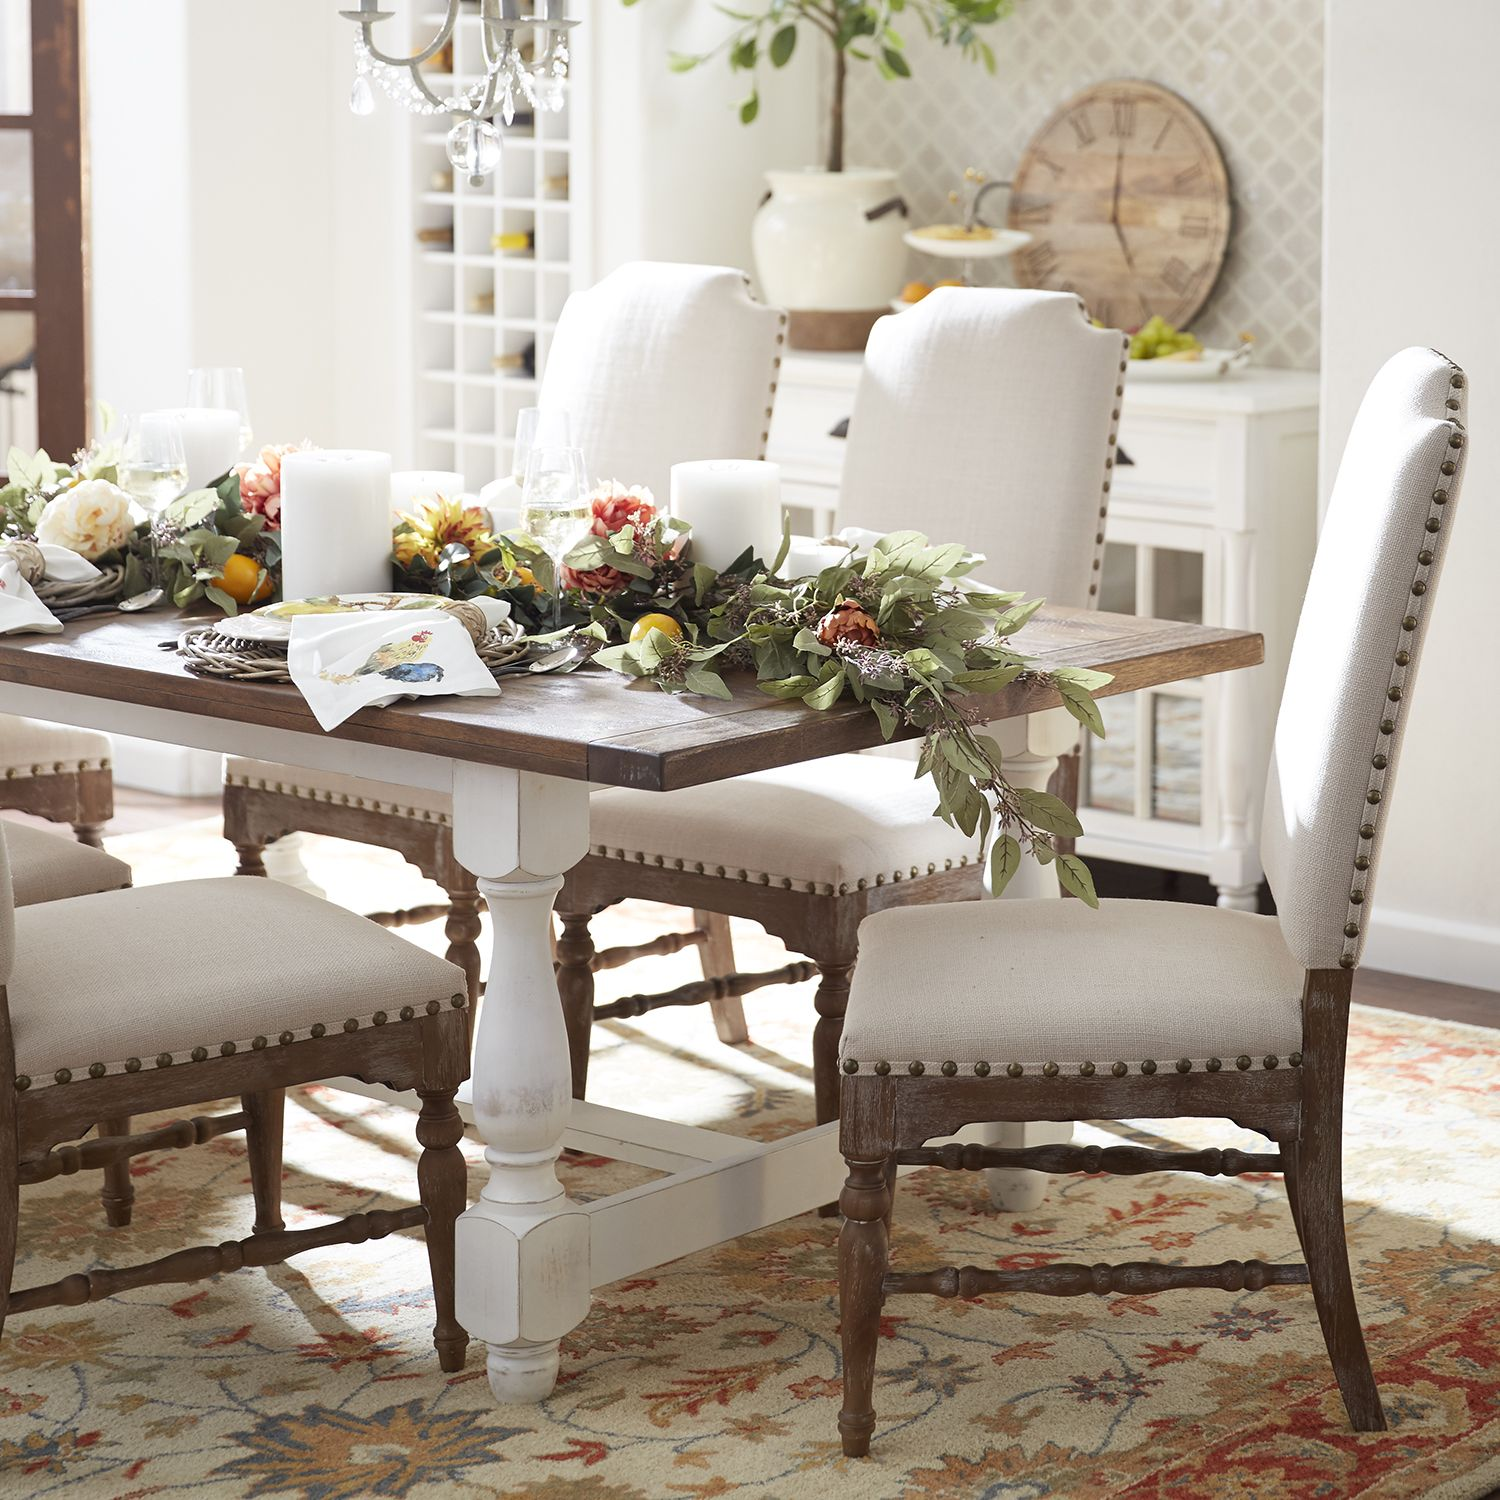 Heartland White Dining Tables White Dining Table Dining Room